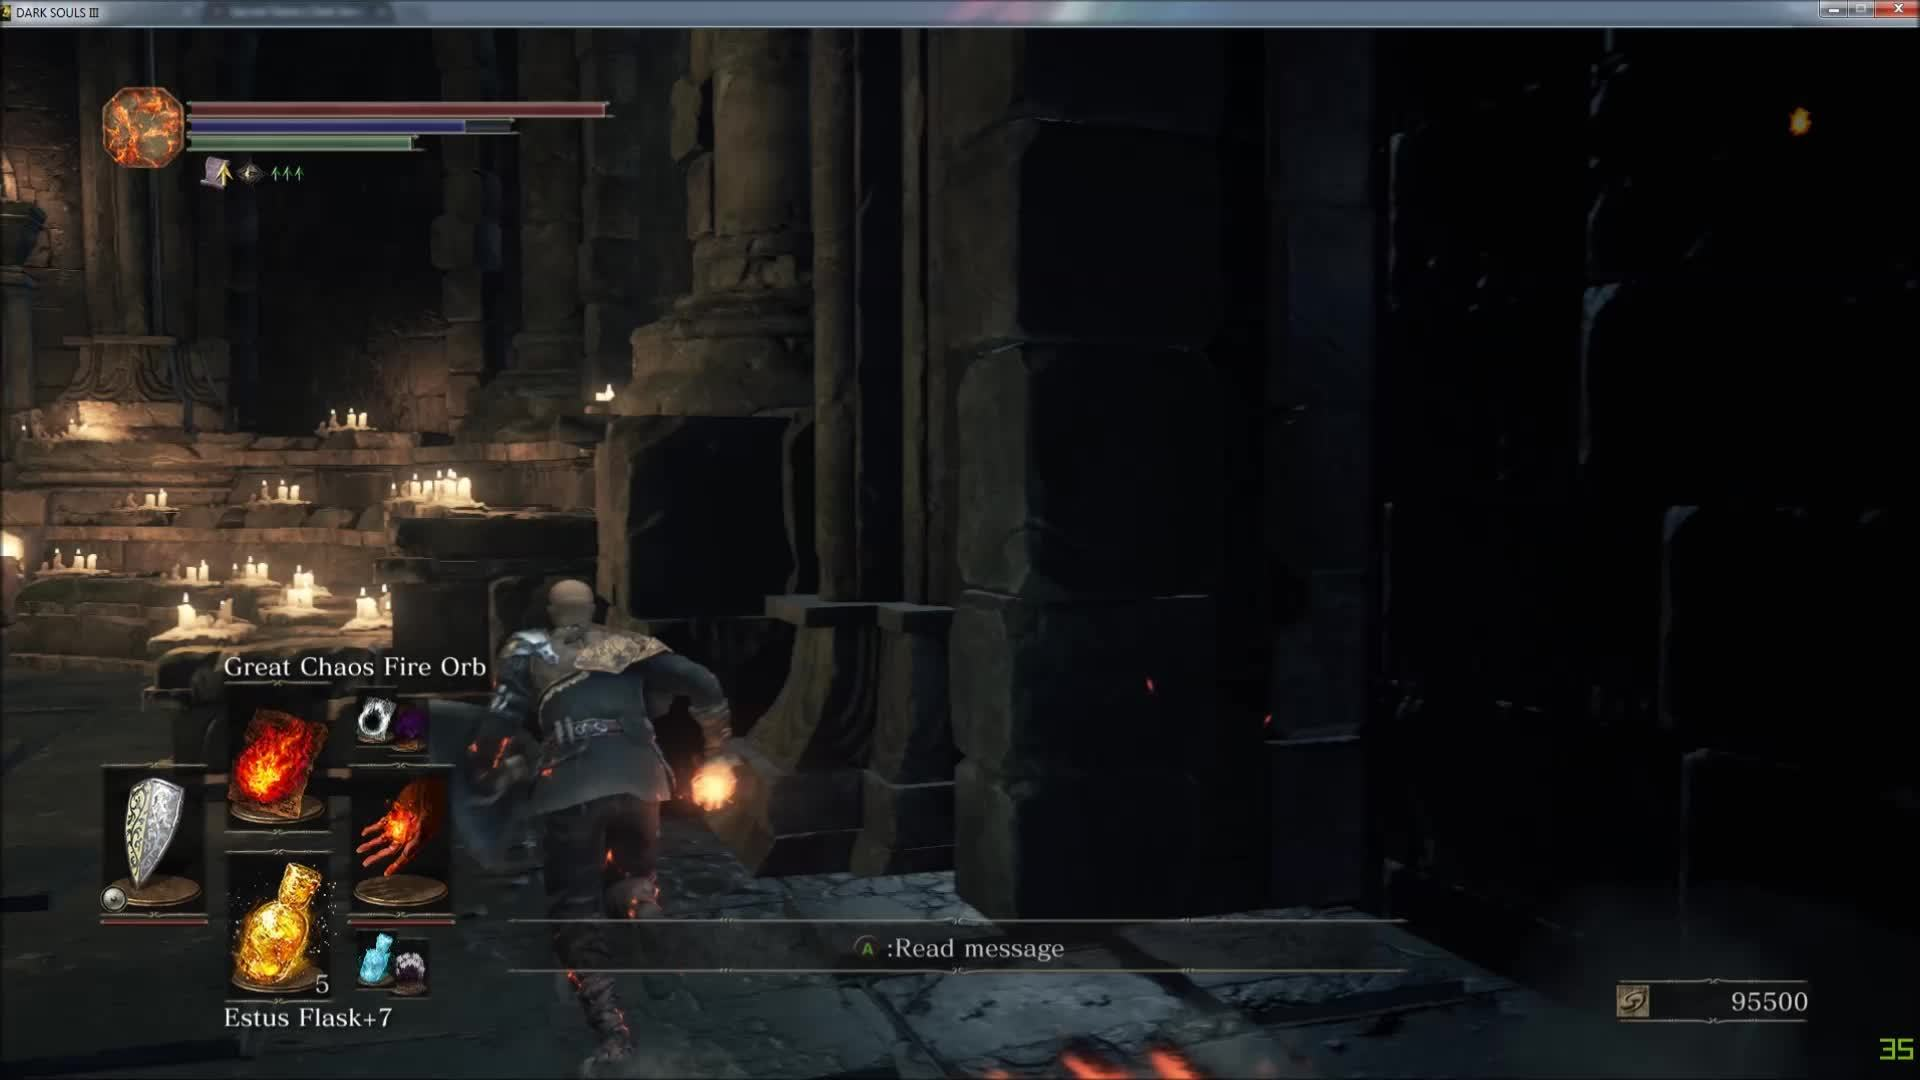 darksouls3, When they said